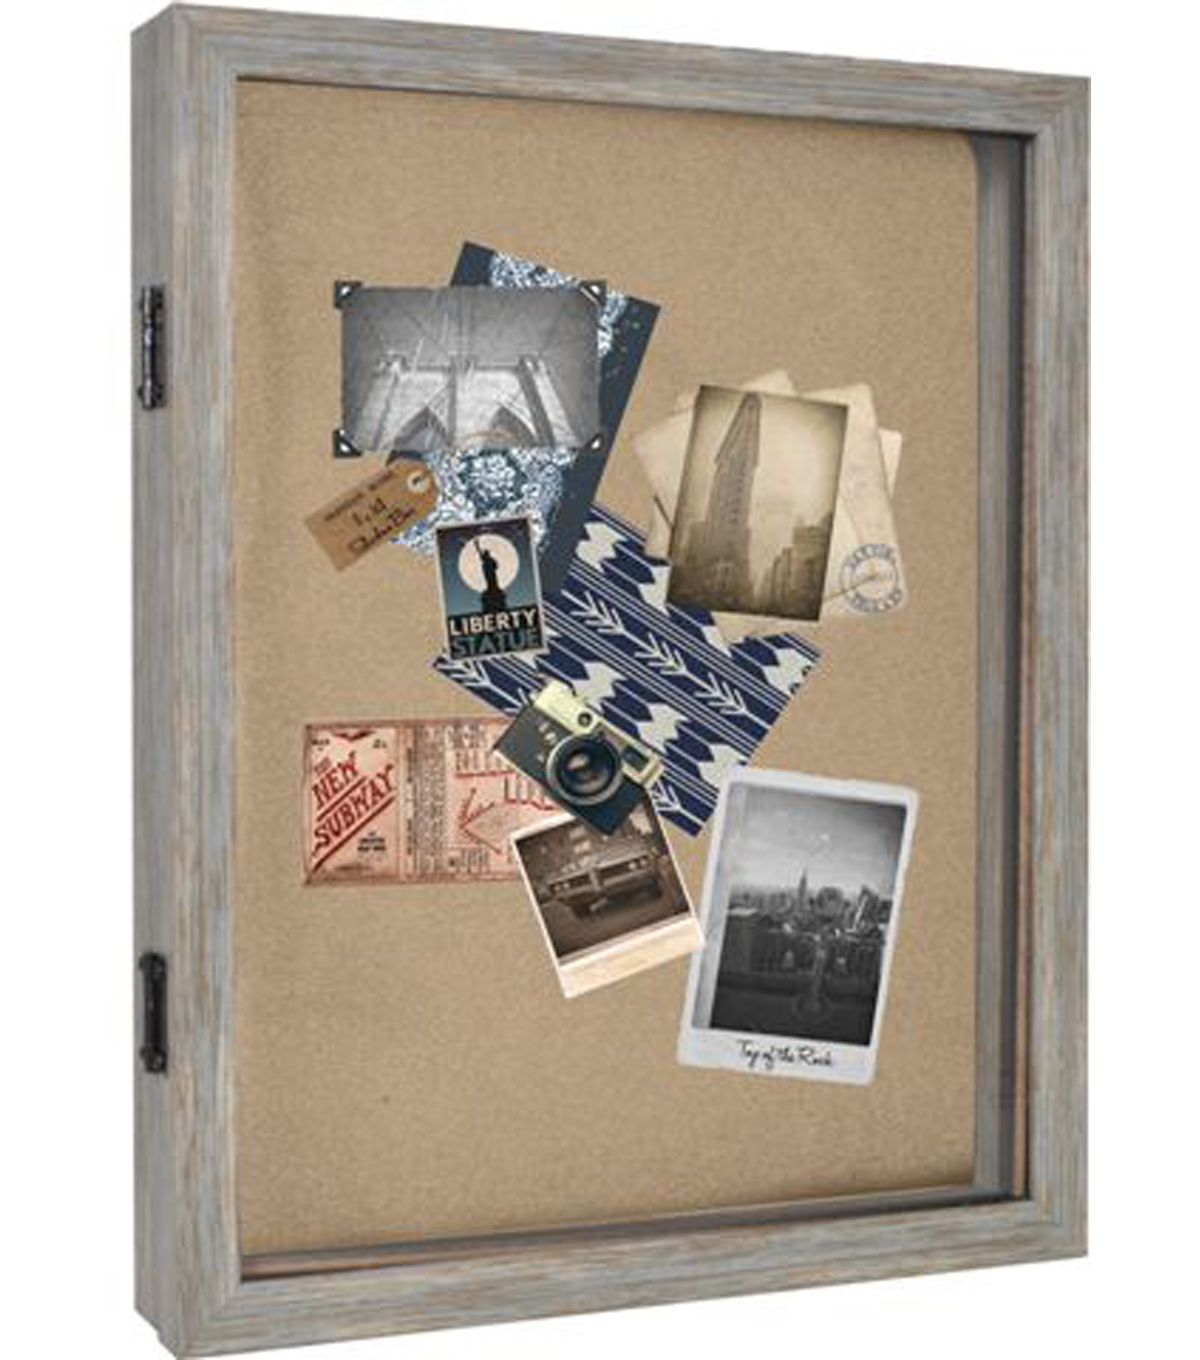 11x14 Distressed Blue Molding Shadowbox Frame Joann